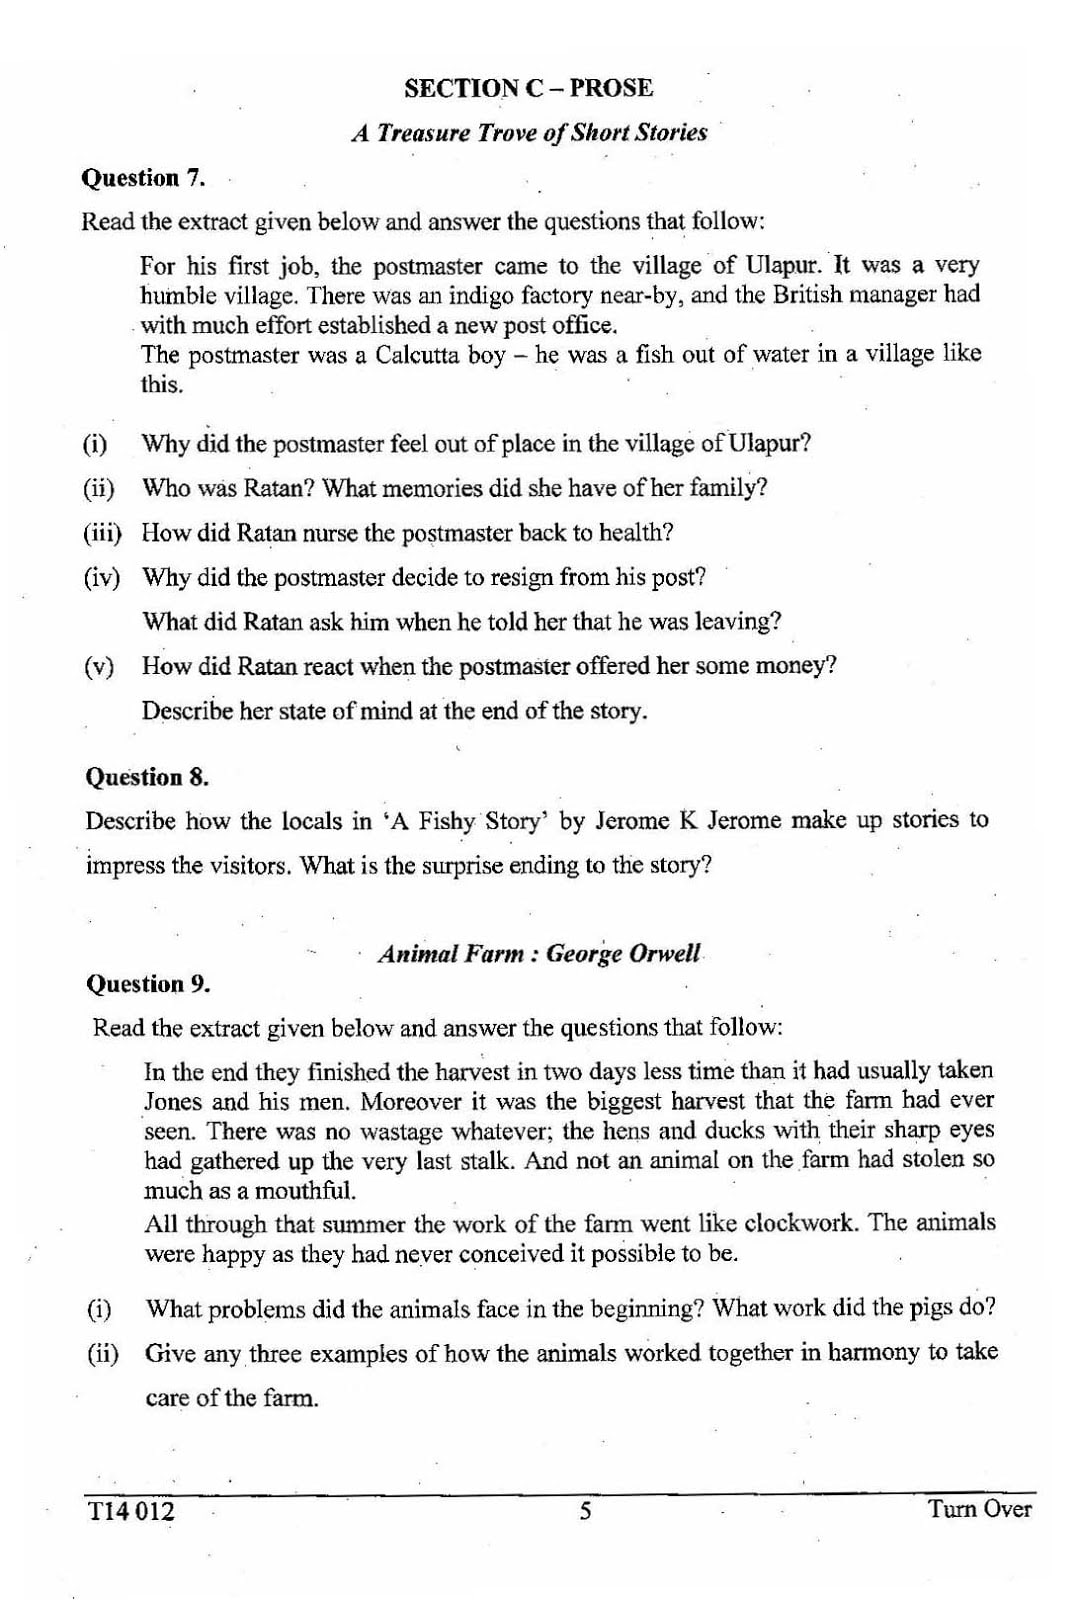 ICSE Class 10 English Literature 2014 Question Paper